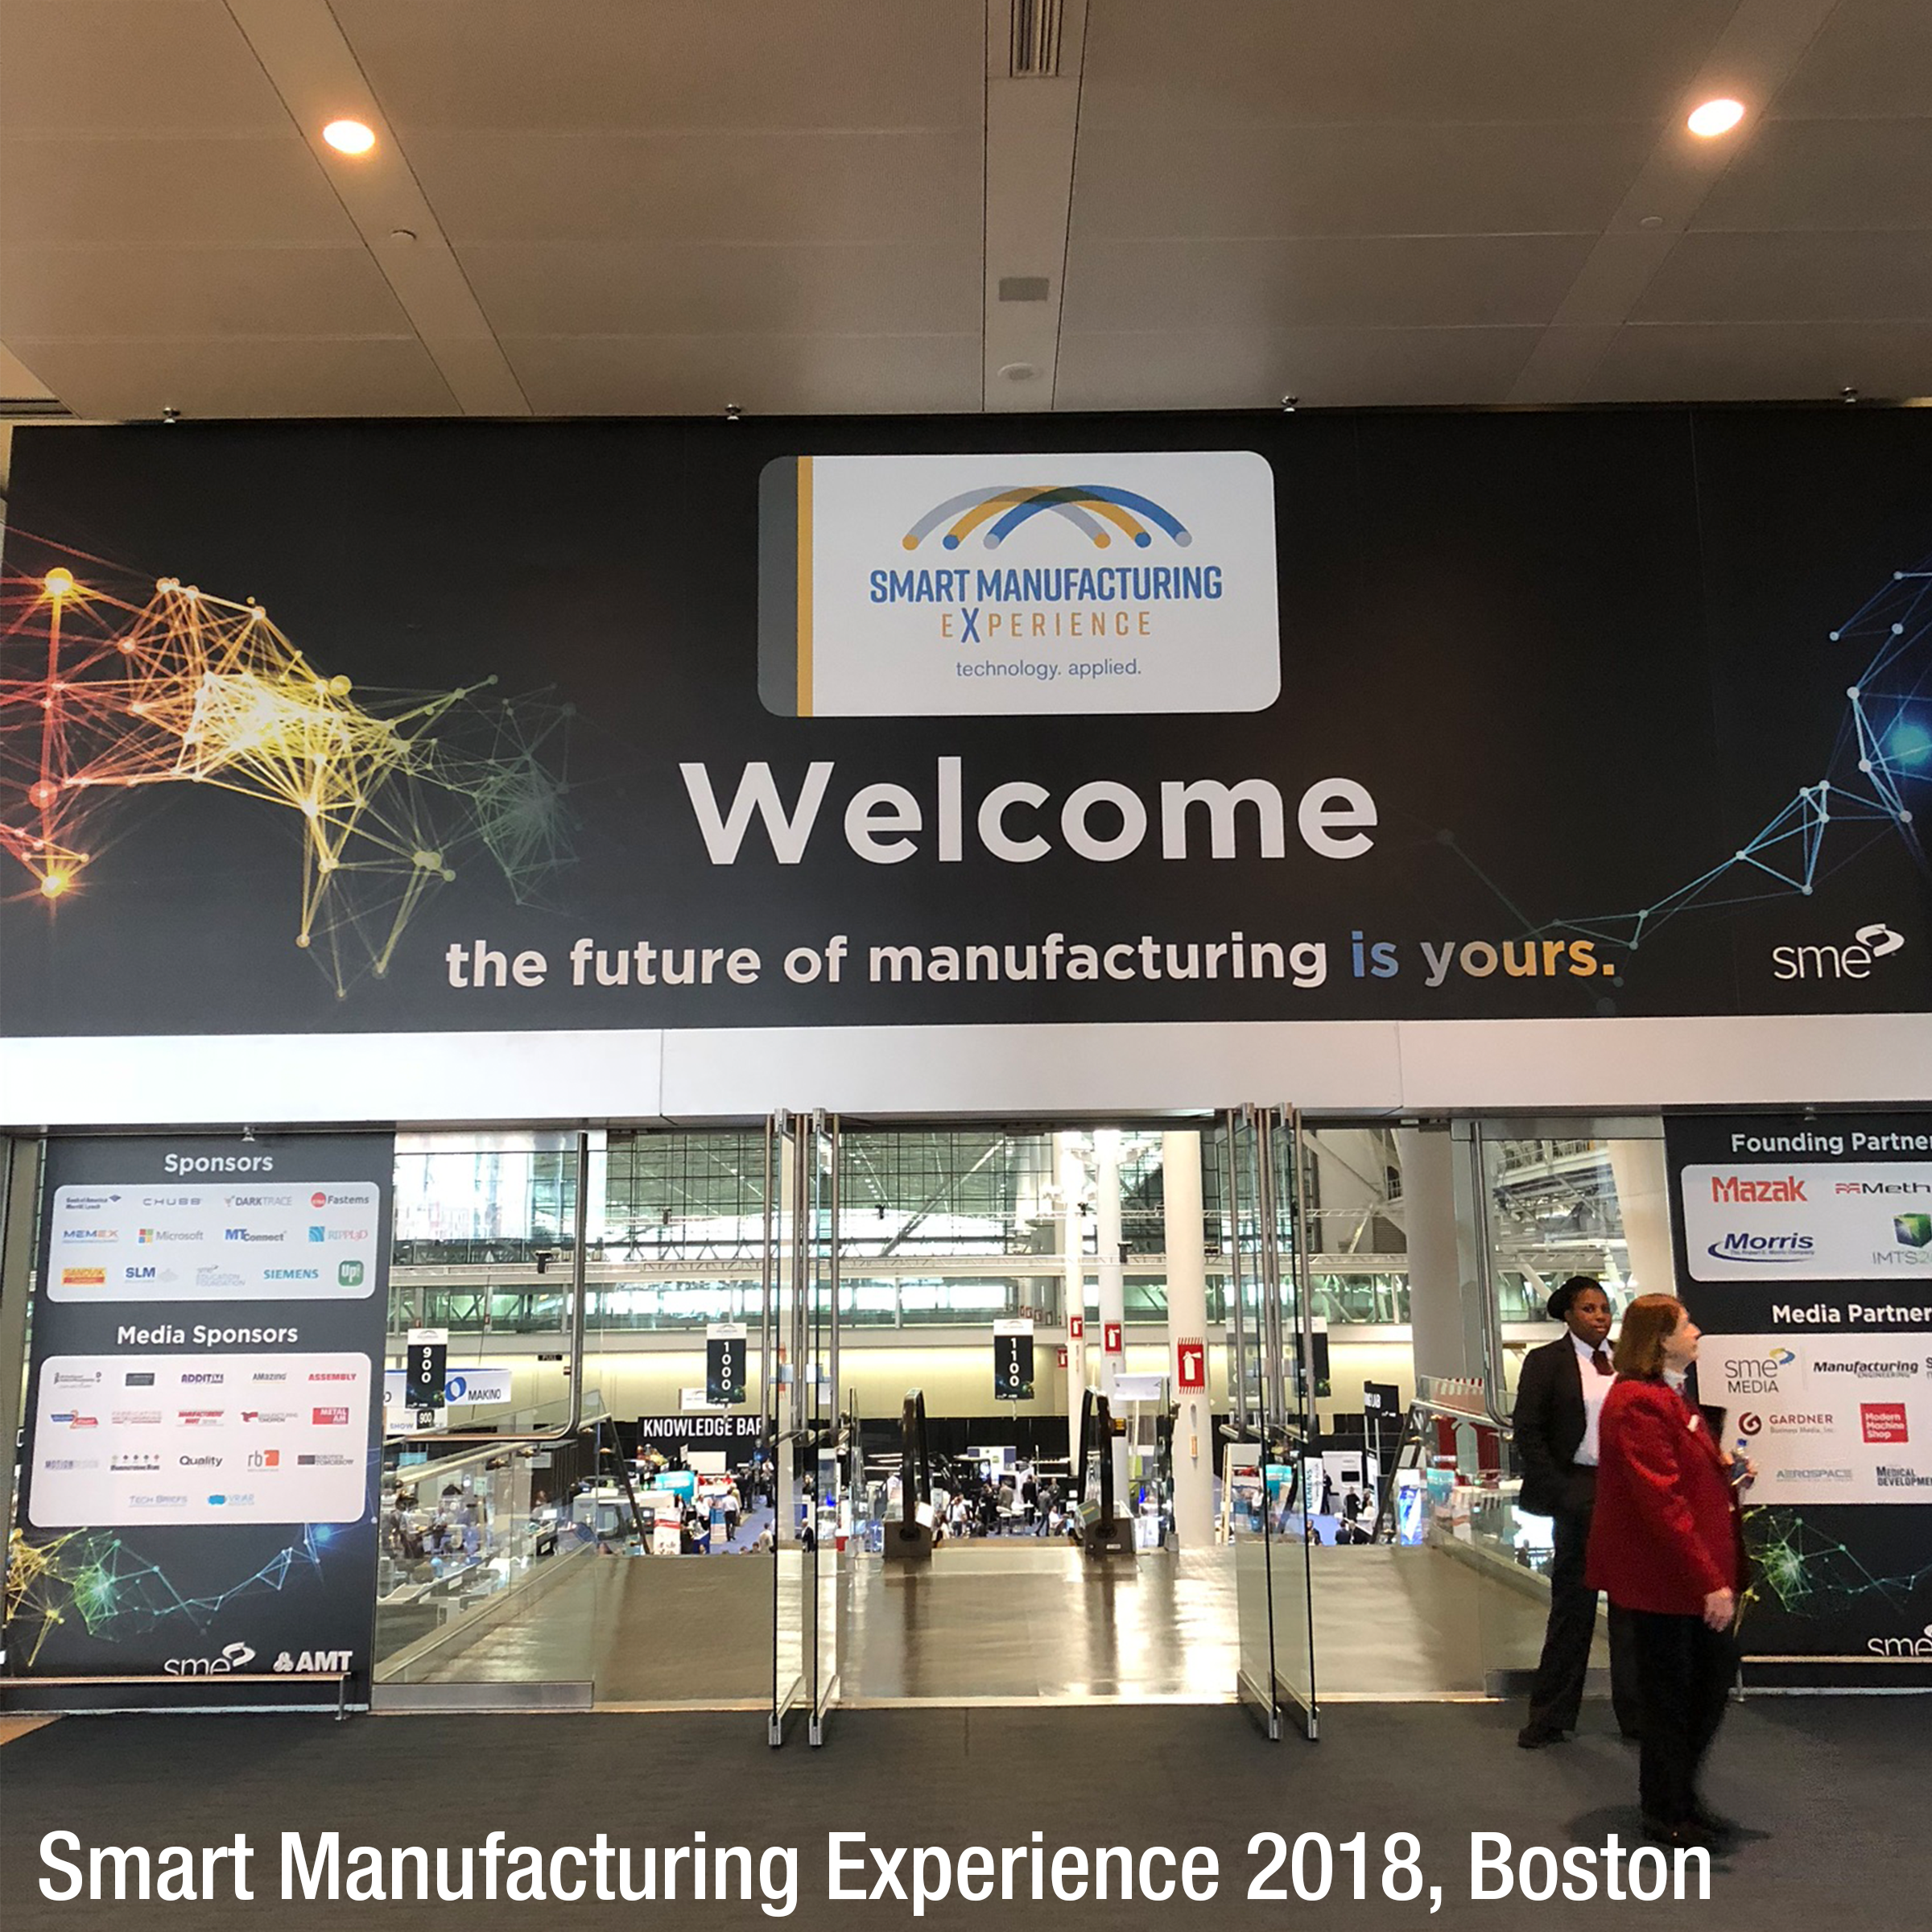 Smart Manufacturing Experience, 2018